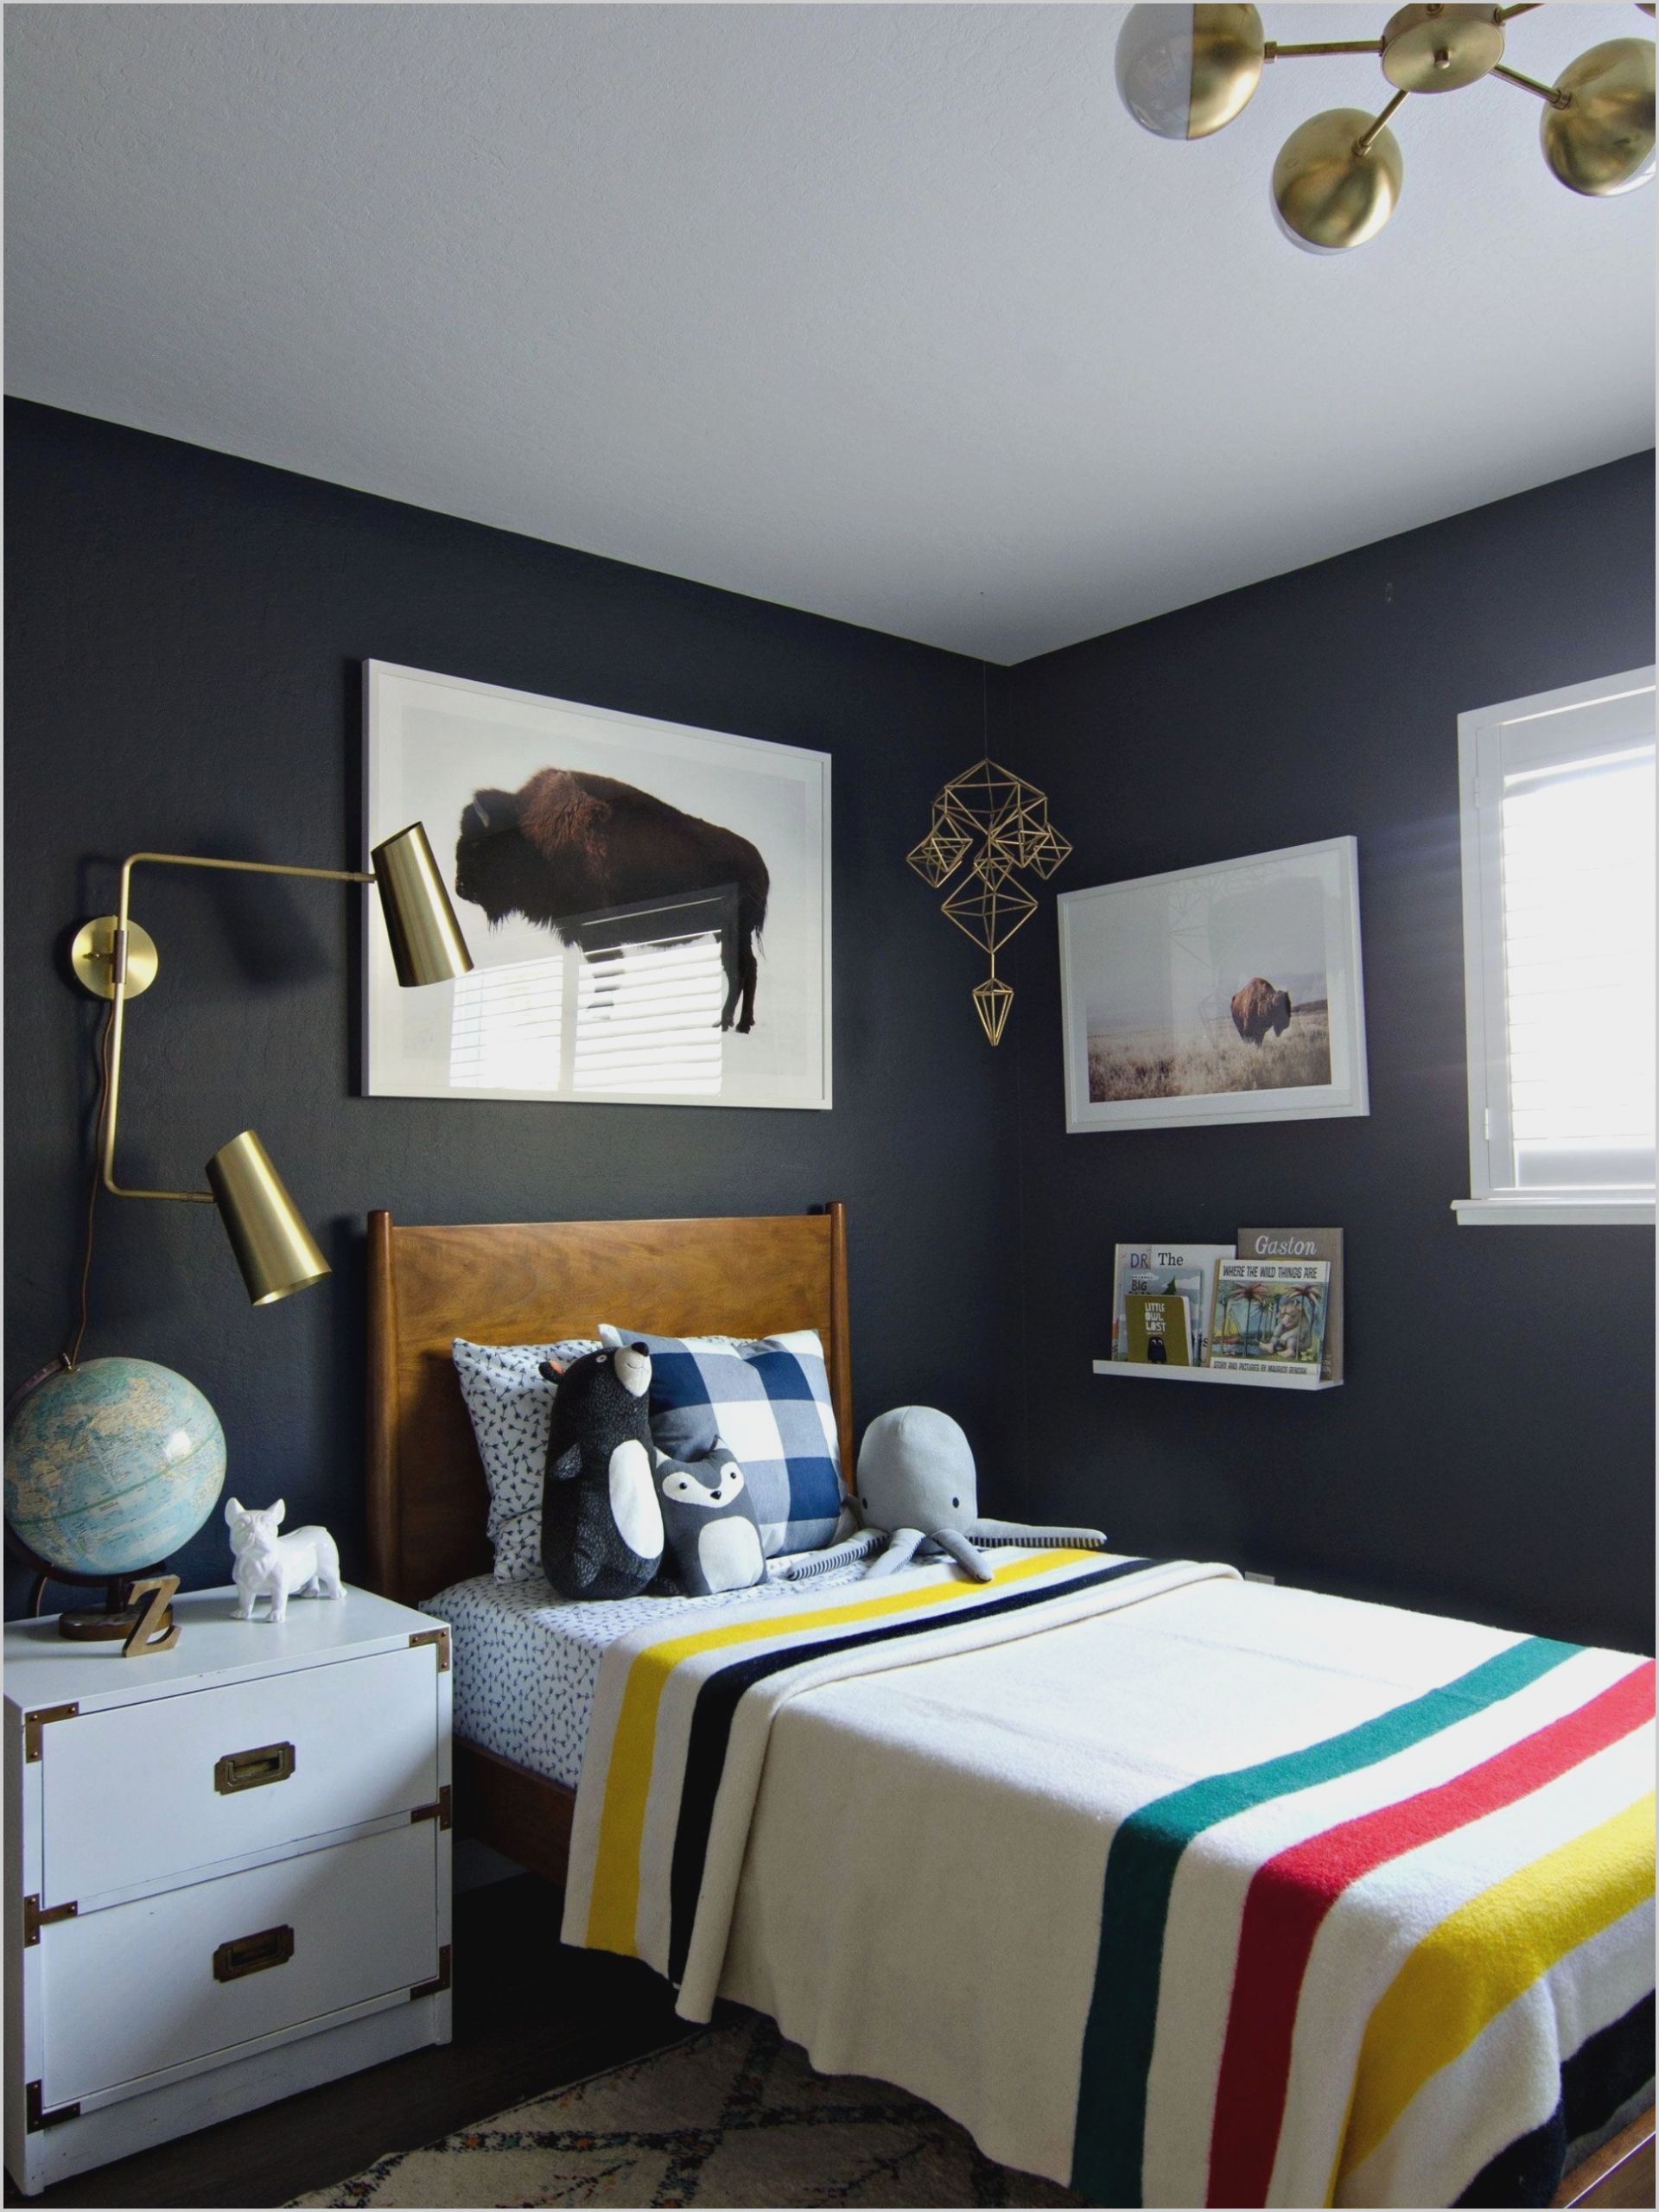 Bedroom Furniture Designs For 10x10 Room Small Bedroom Designs Cozy Bedroom Design Grey And Gold Bedroom